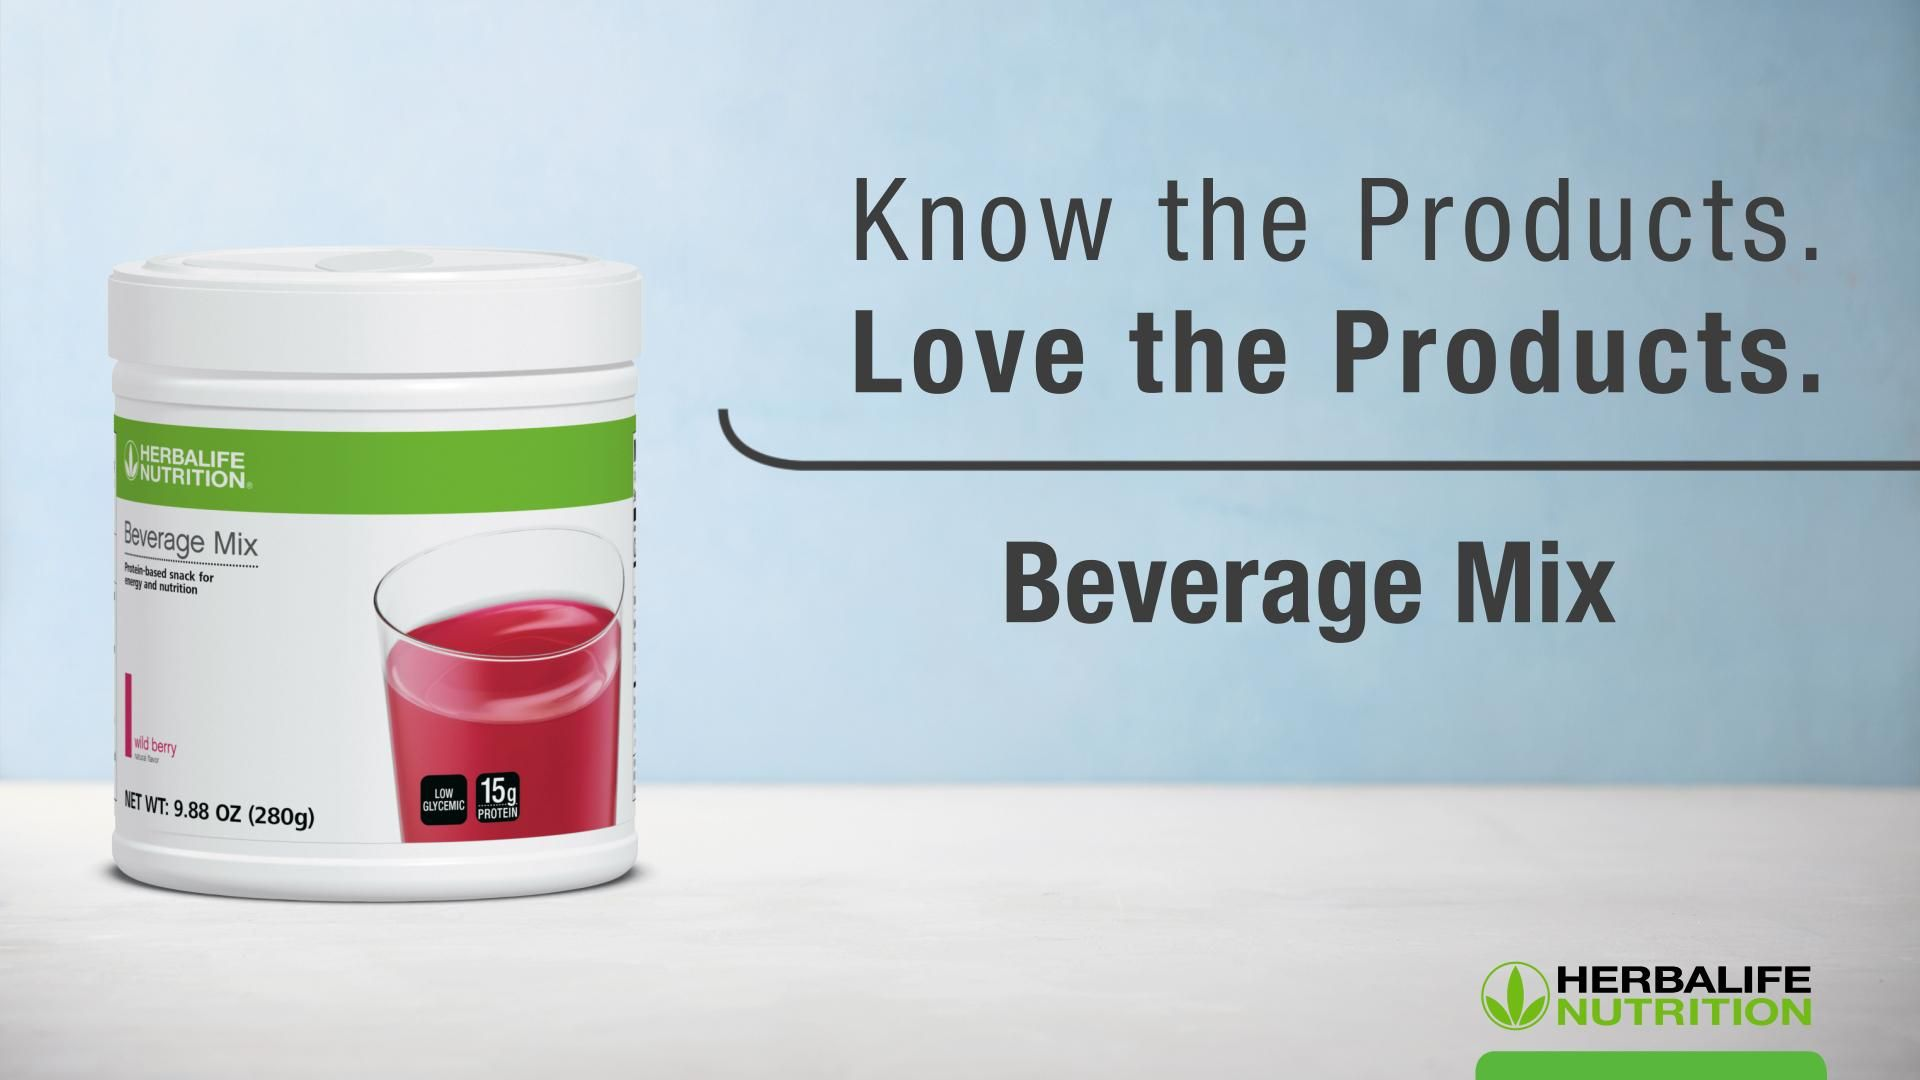 Beverage Mix: Know the Products